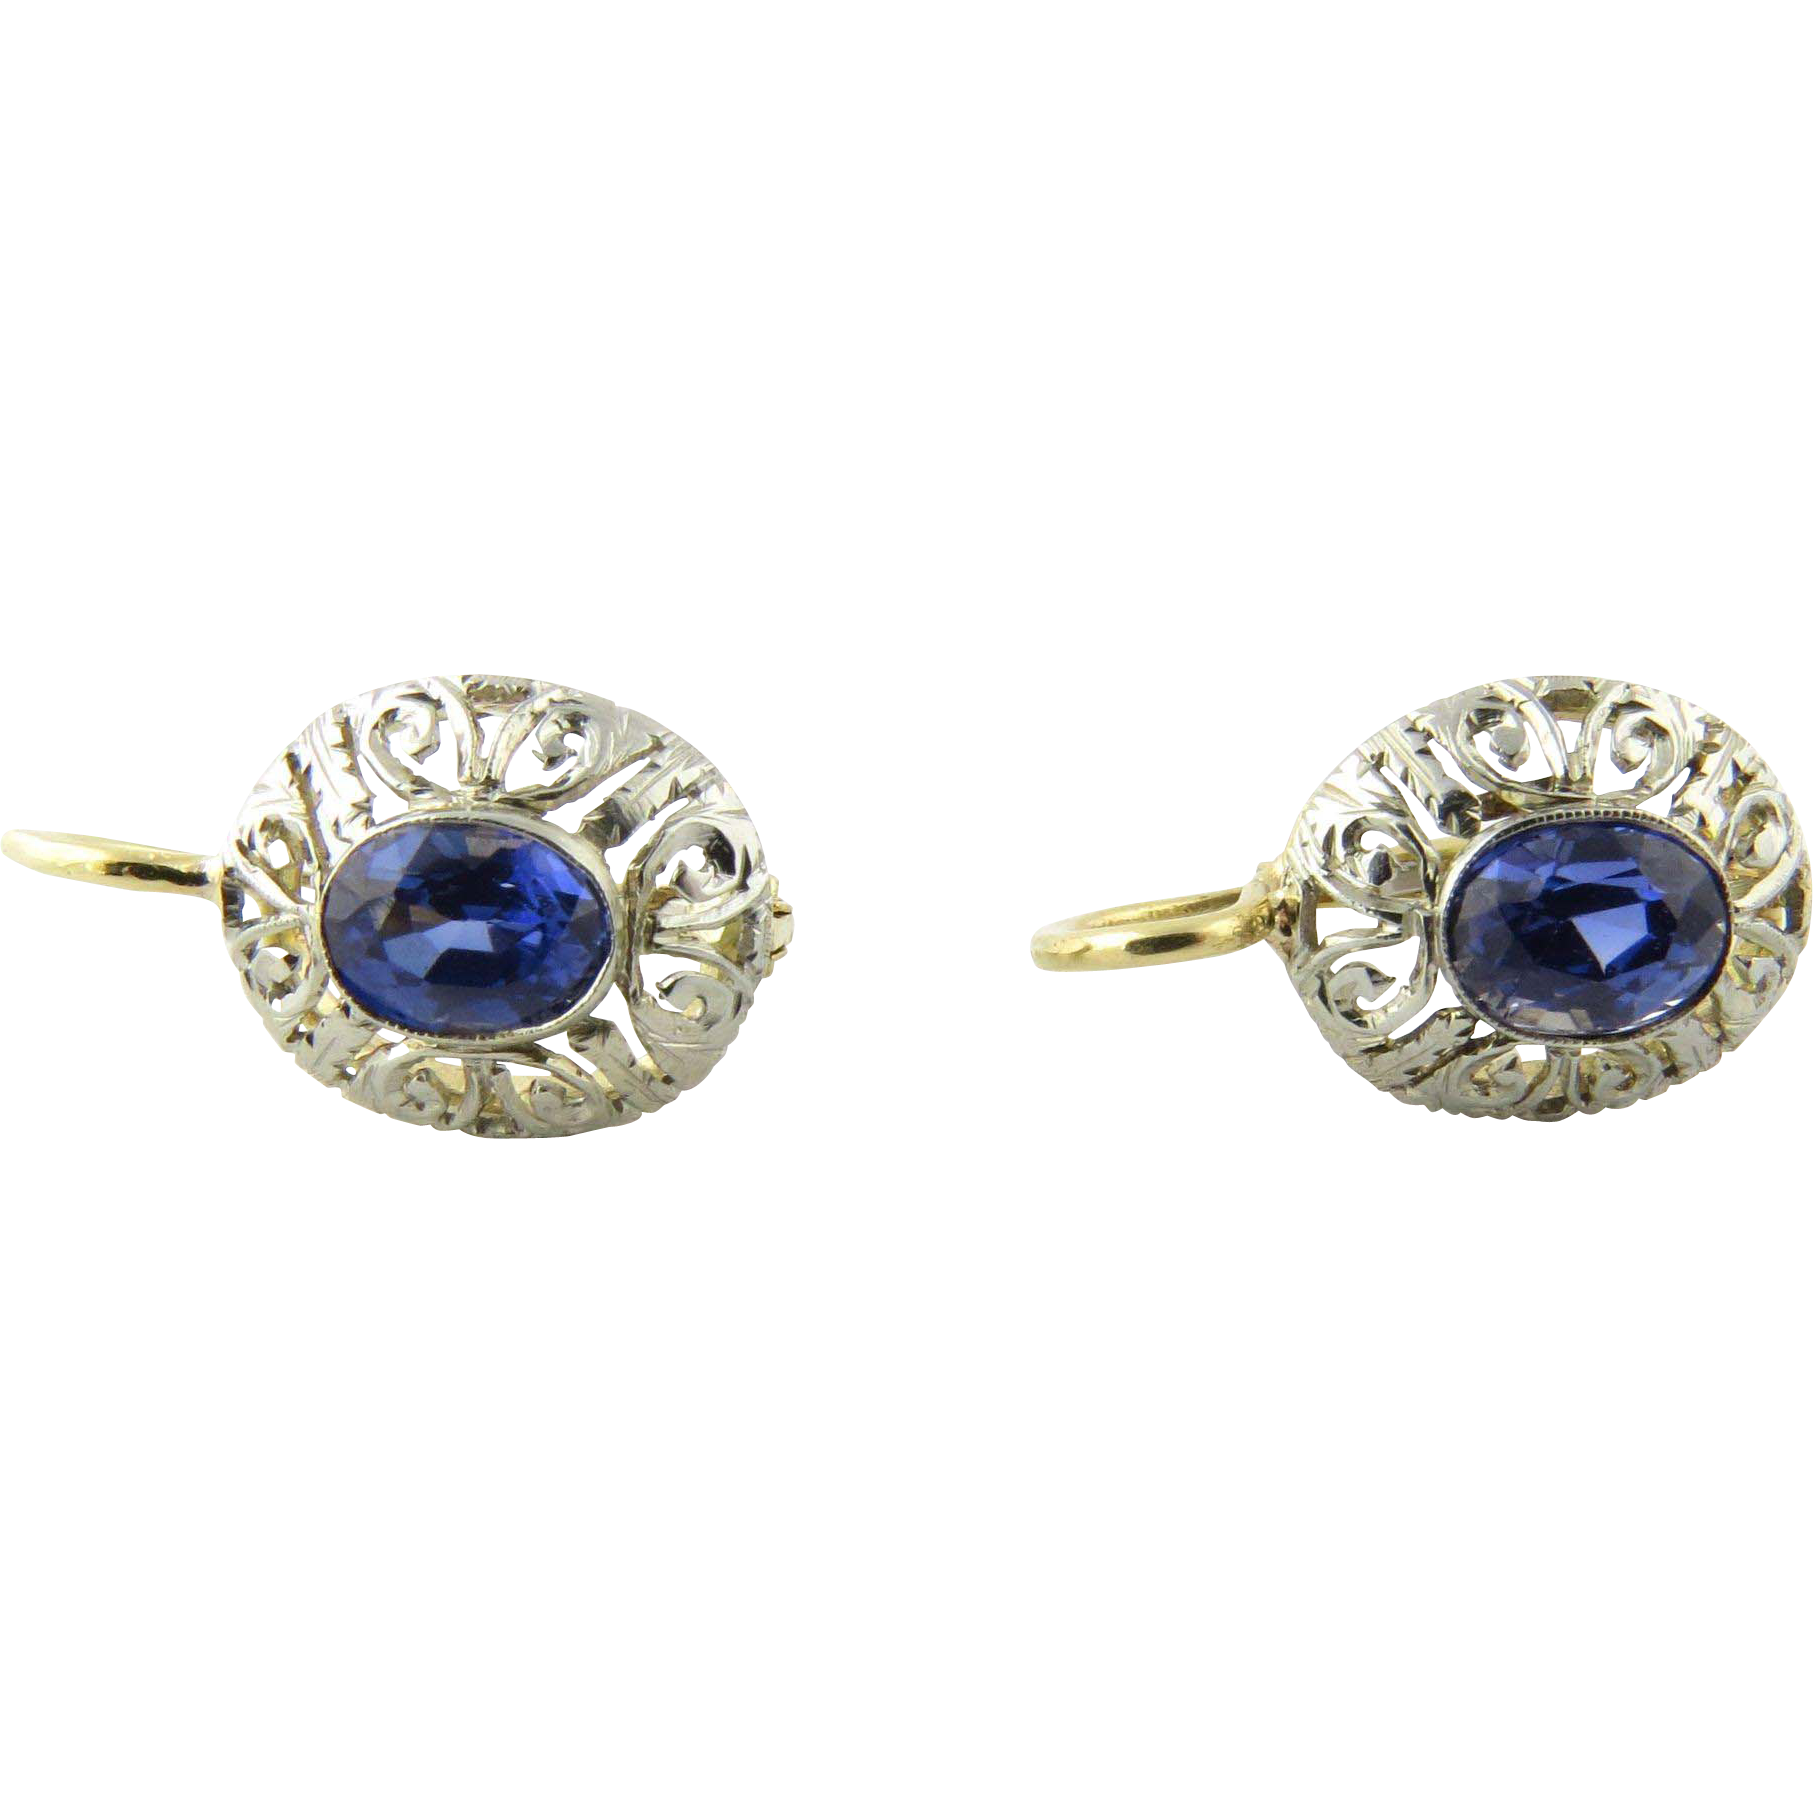 Vintage 14k White And Yellow Gold Genuine Sapphire Earrings